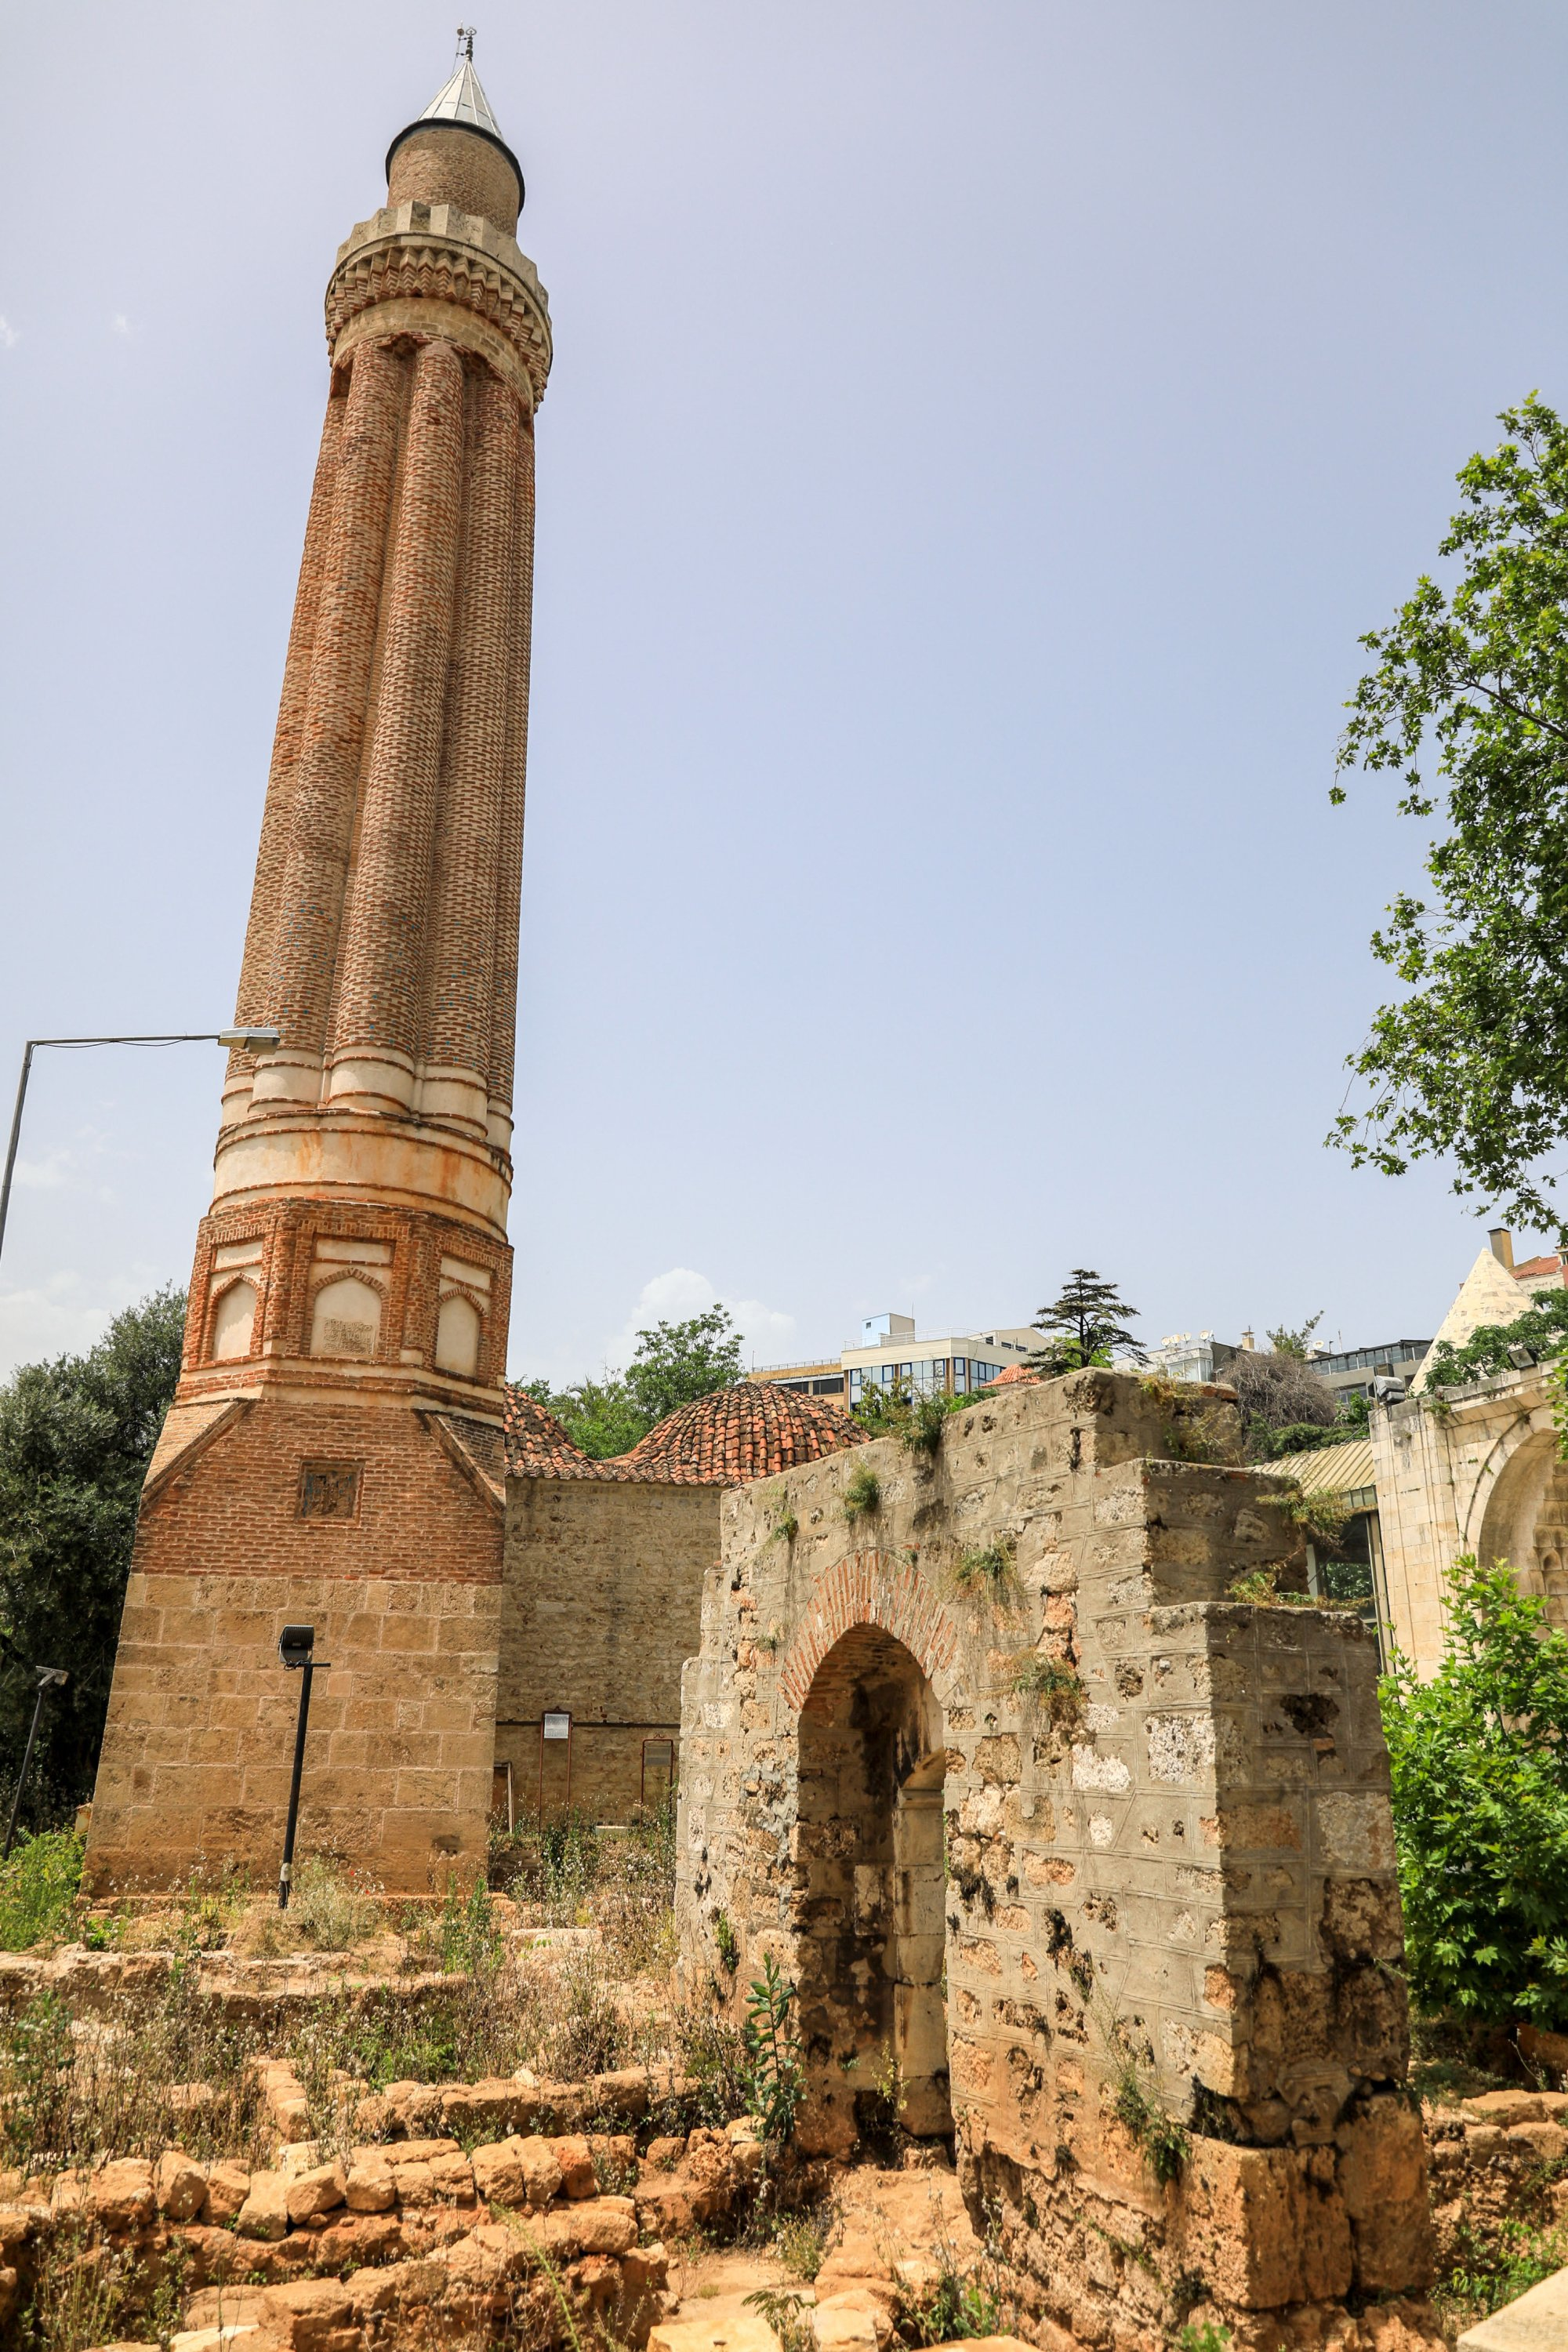 The Yivli Minare Mosque is the first Turkish-Islamic work in Antalya, Turkey. (DHA Photo)